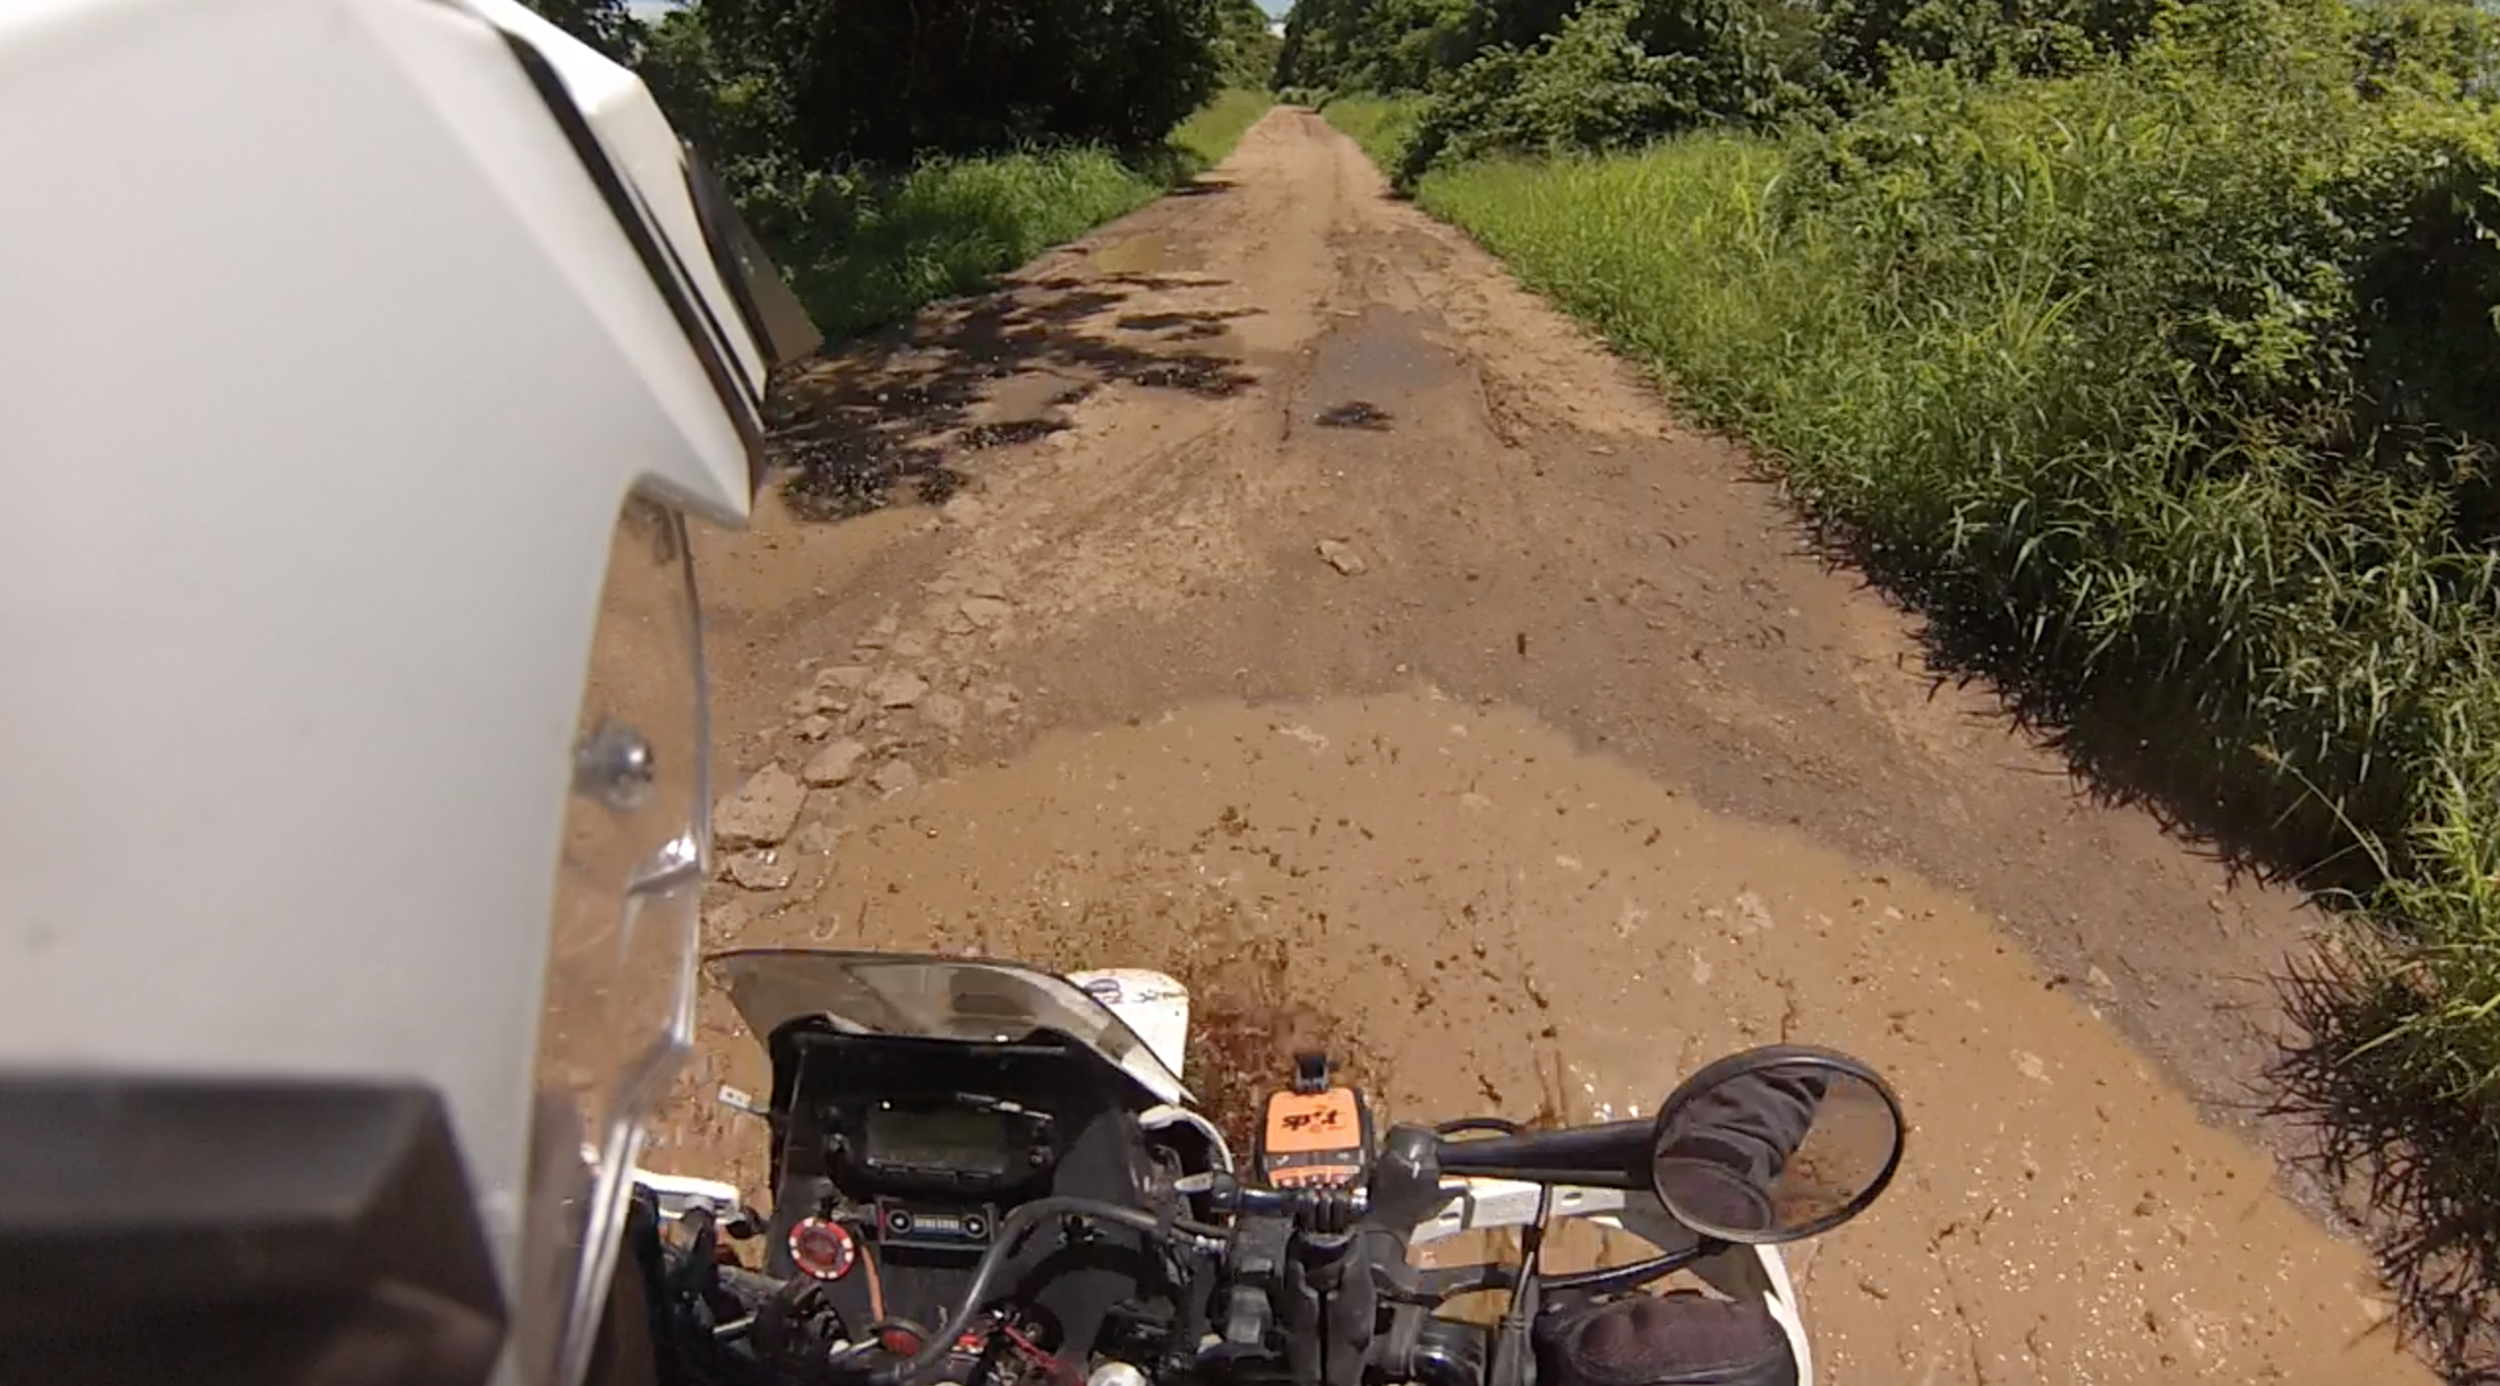 Into the mud we go